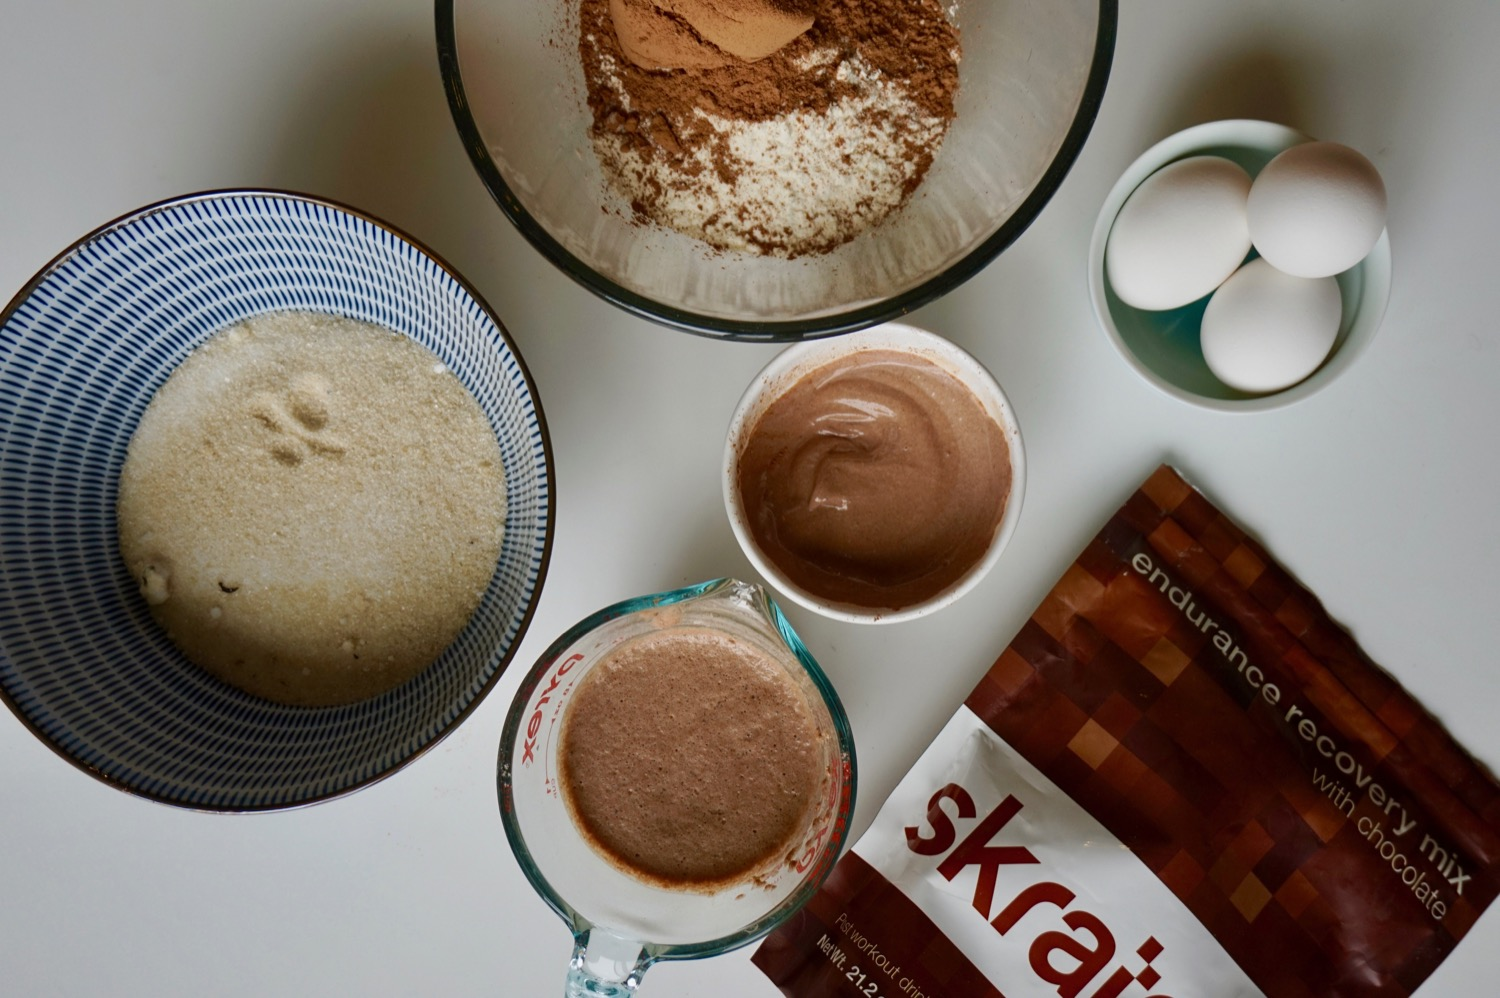 Everything you need to create a creamy, dreamy chocolate birthday cake #fromSkratch!